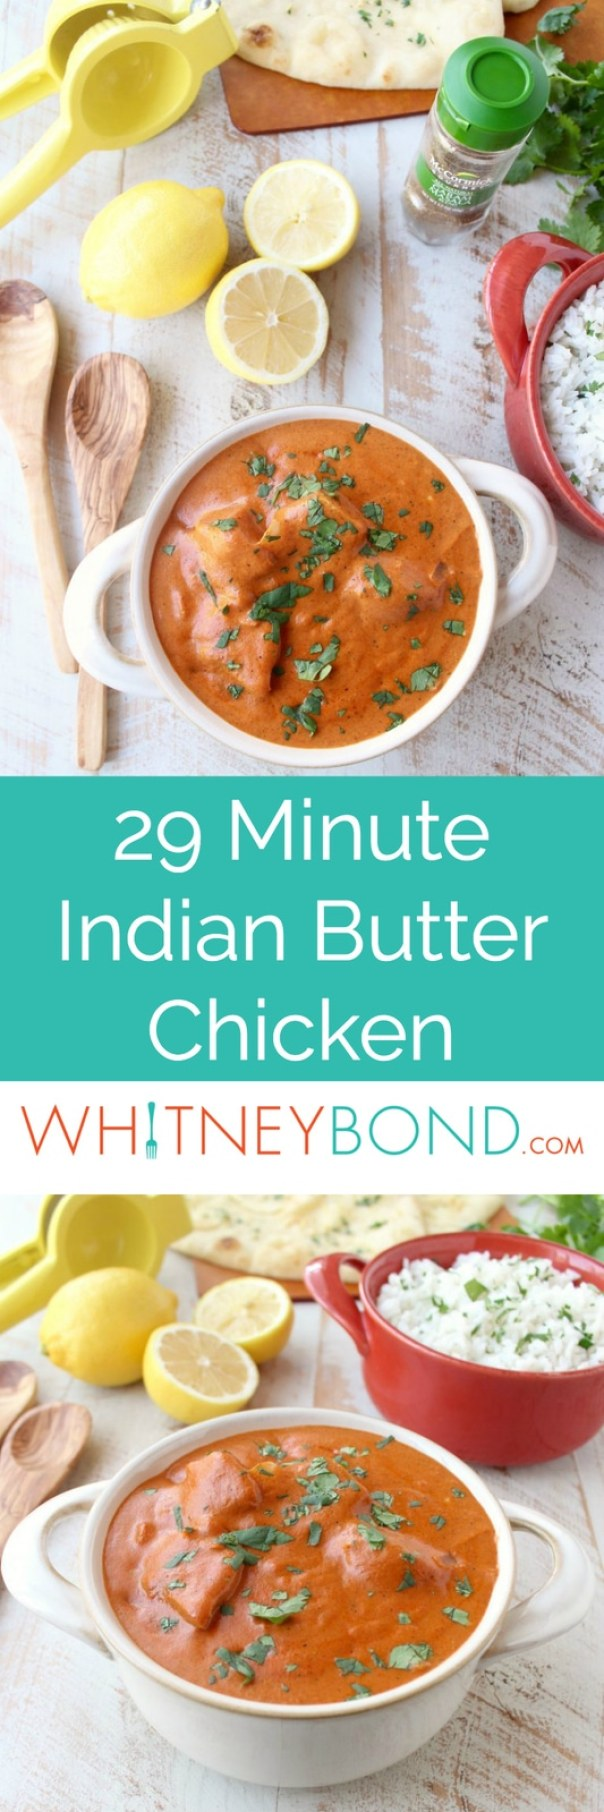 Indian butter chicken recipe 29 minute meal whitneybond this 29 minute indian butter chicken recipe is a quick easy twist on a classic forumfinder